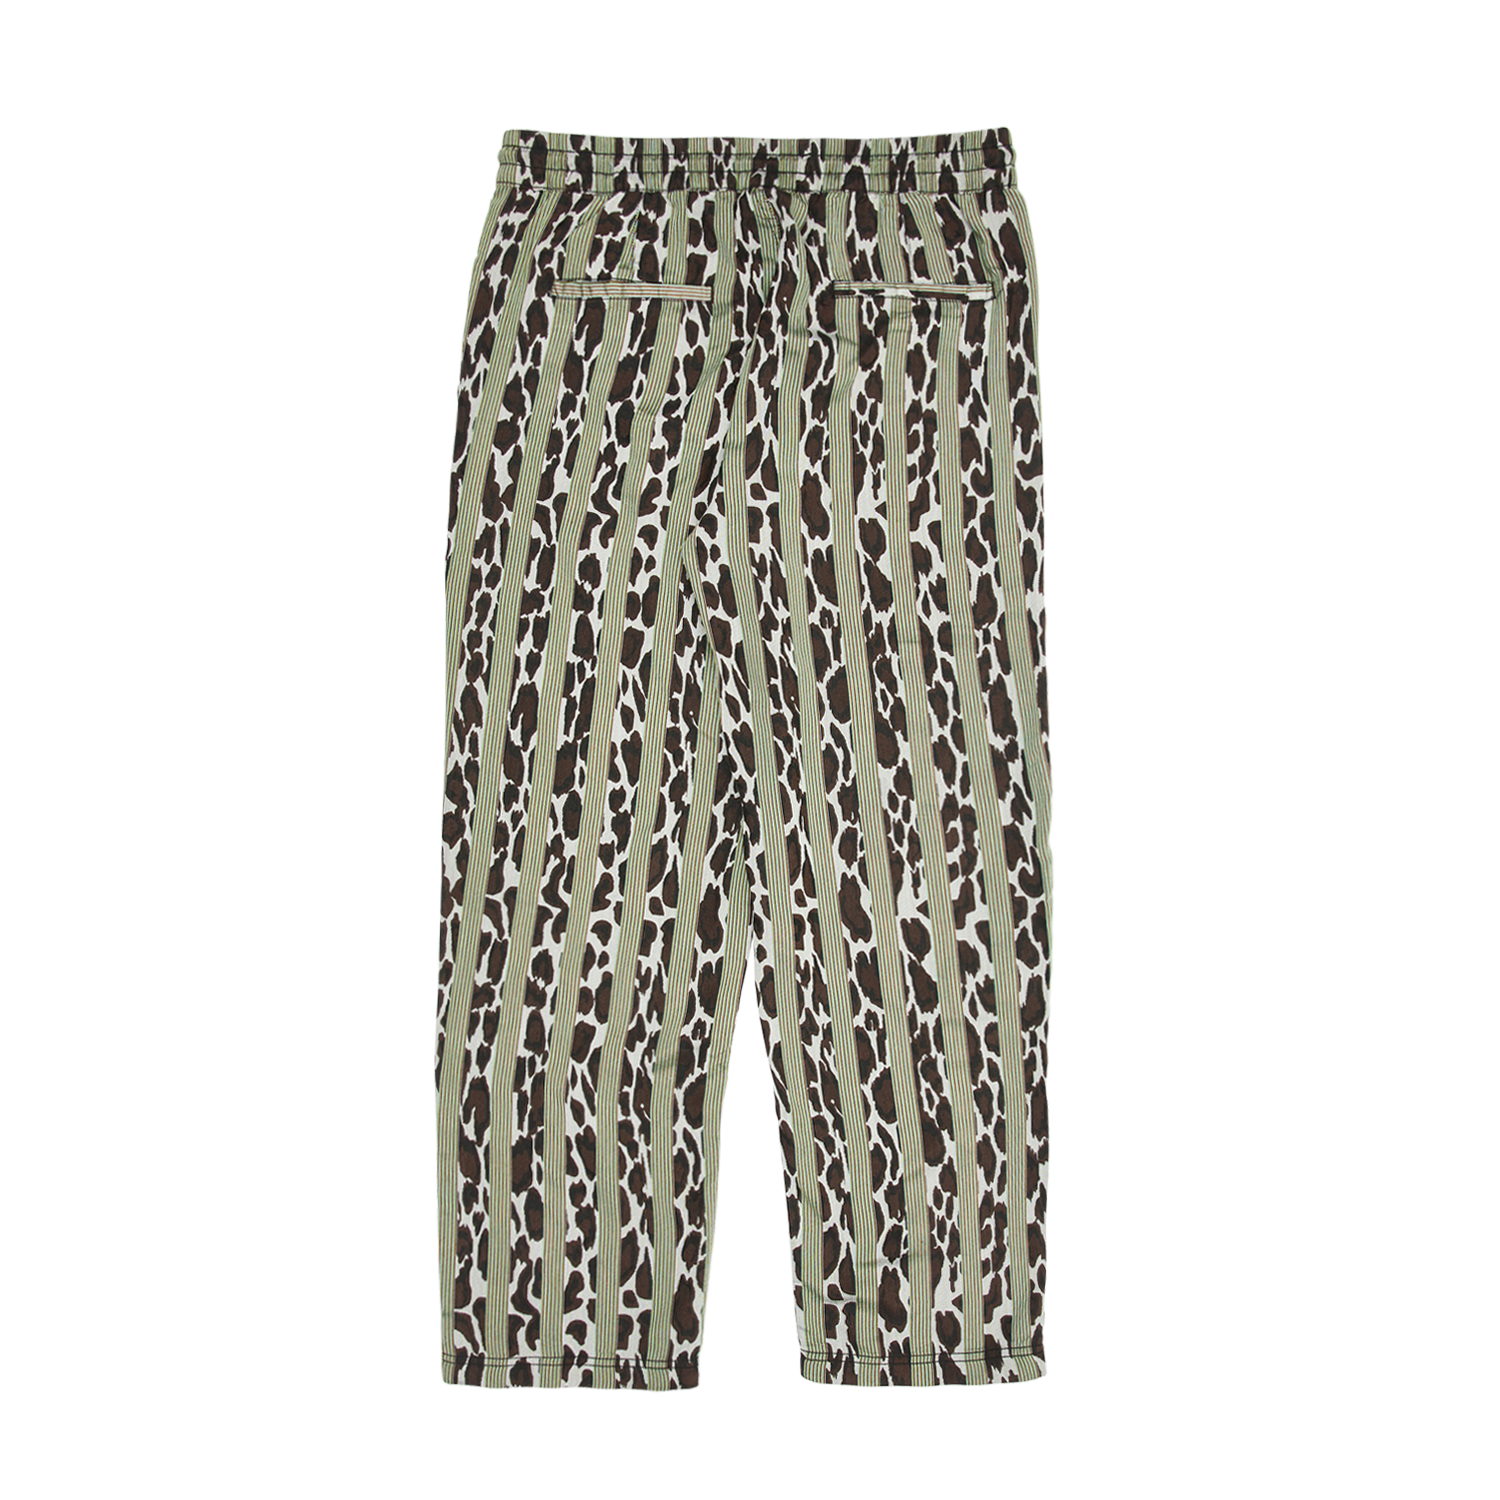 BLOOM STRIPED BEACH PANT